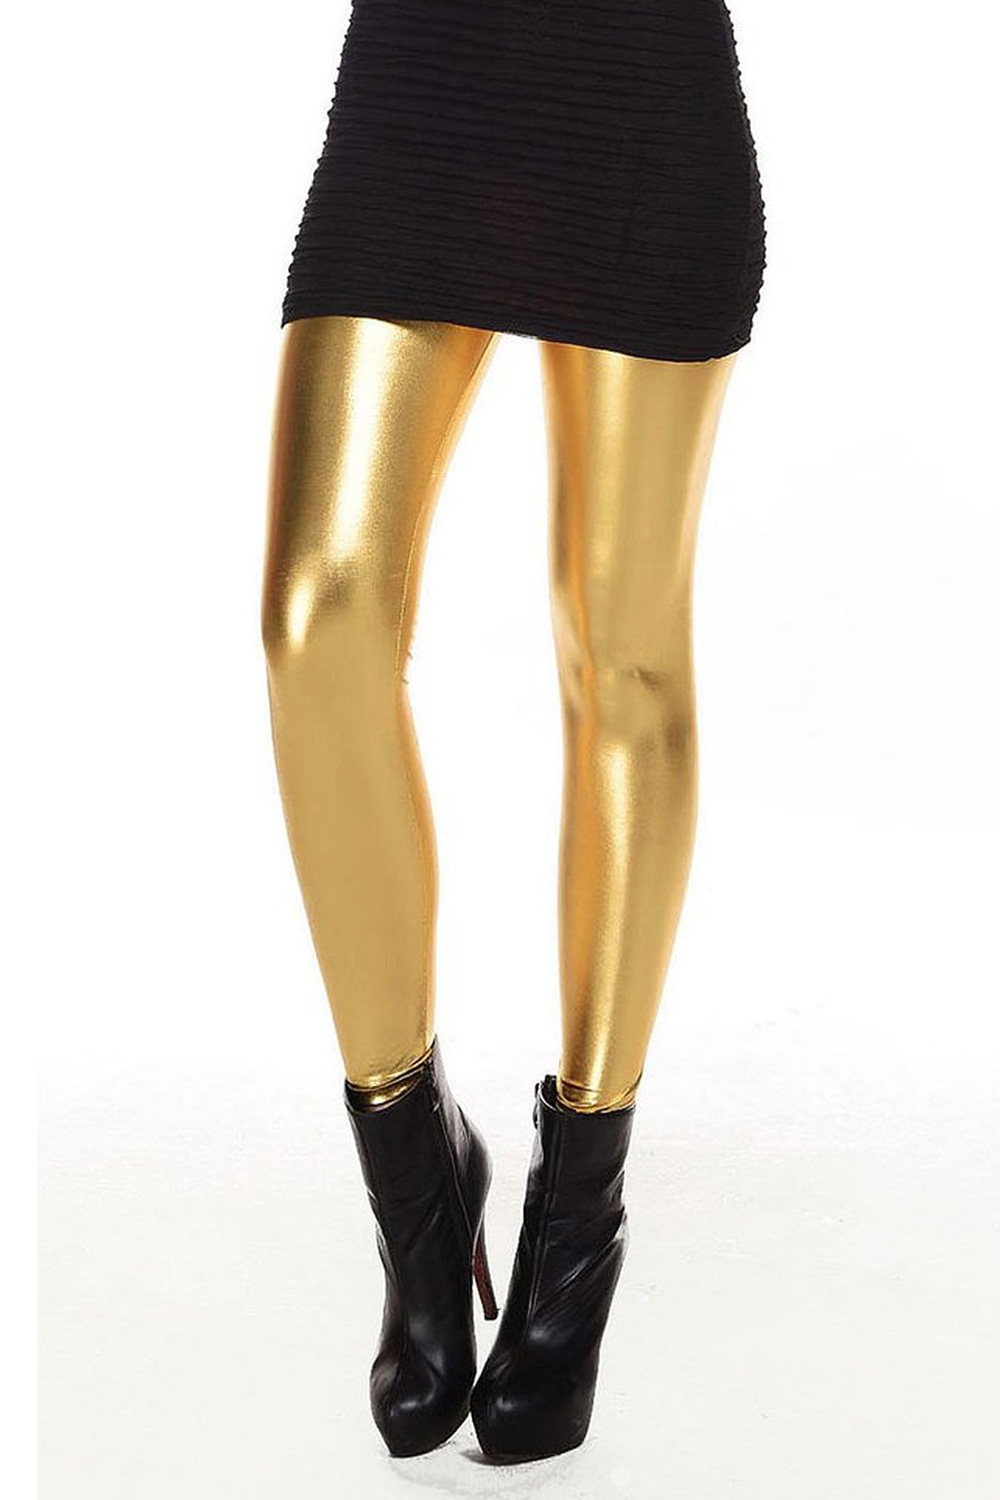 These Women's Gold Lamé Leggings are shiny, stretchy and ready for you to wear out to the party!